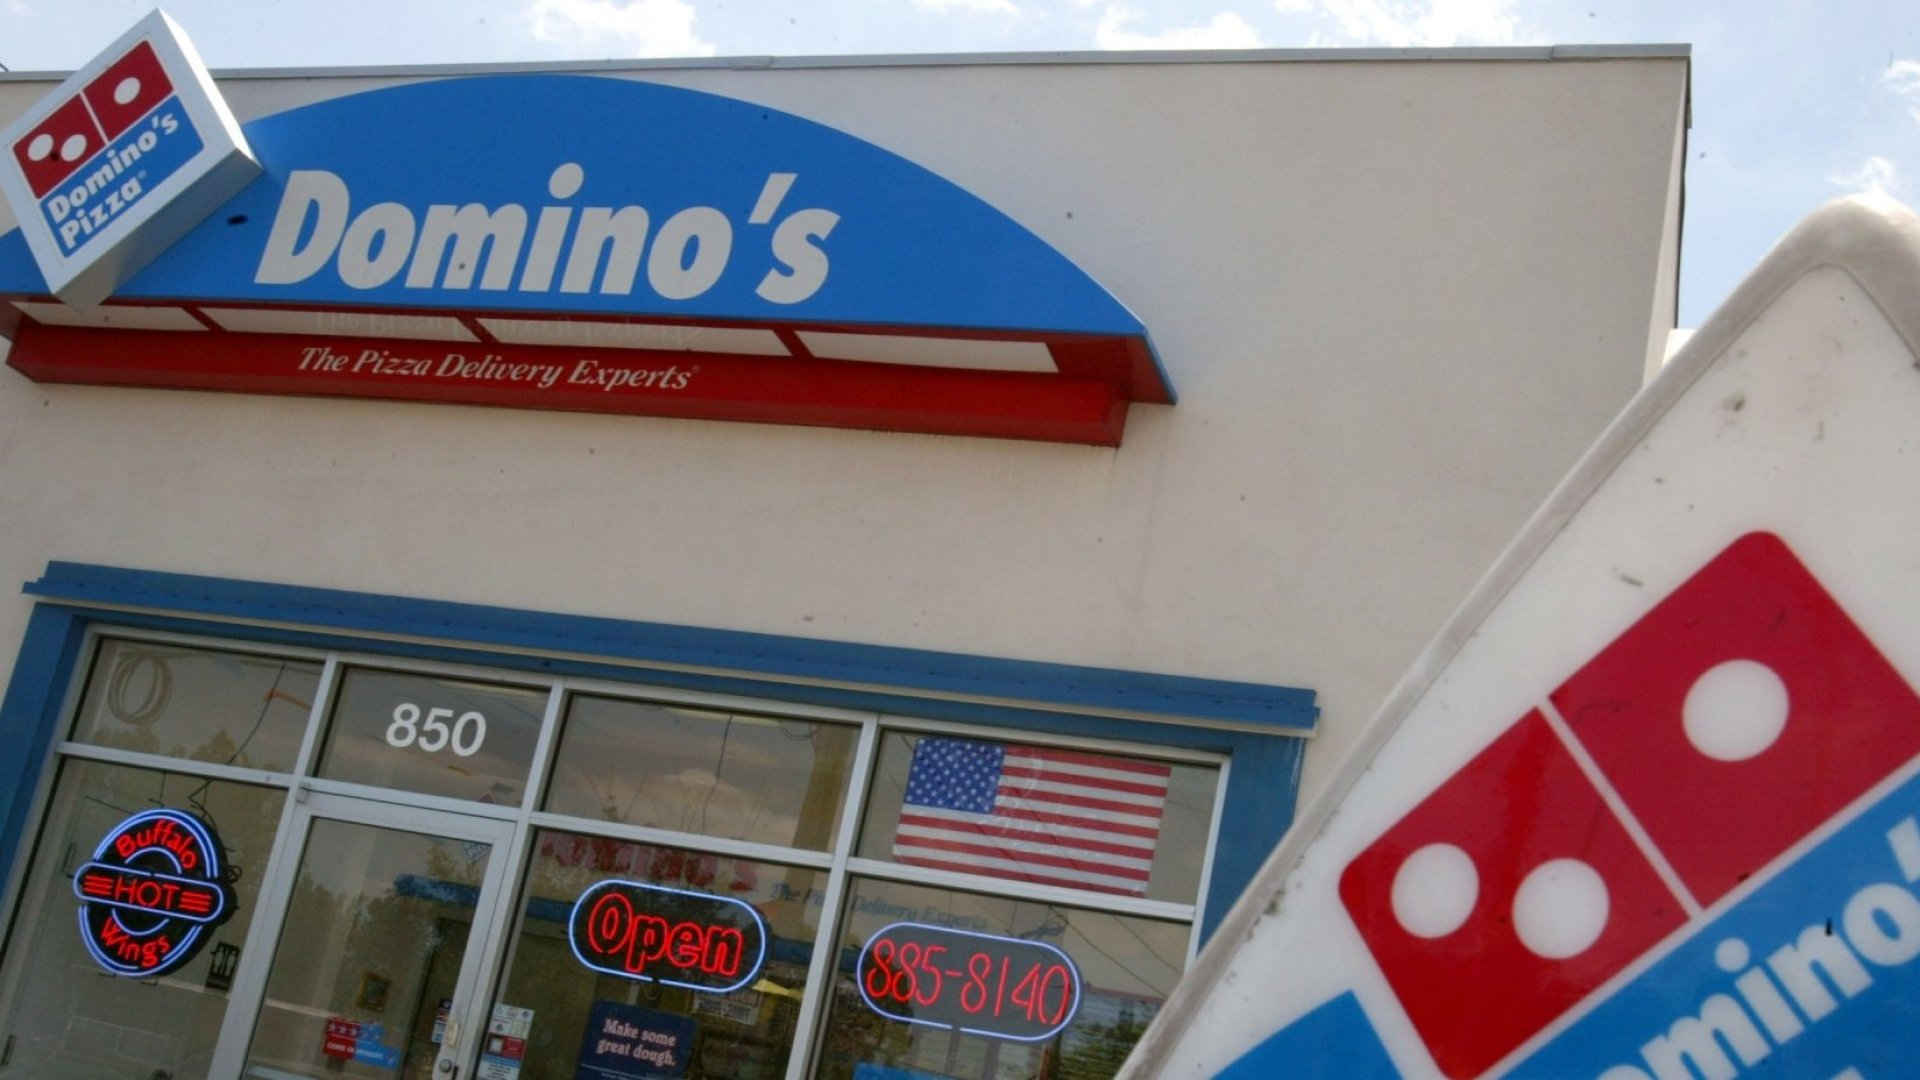 Domino's Offer: Get a Domino's Tattoo, Get Free Pizza for Life (Here's How That Worked Out)